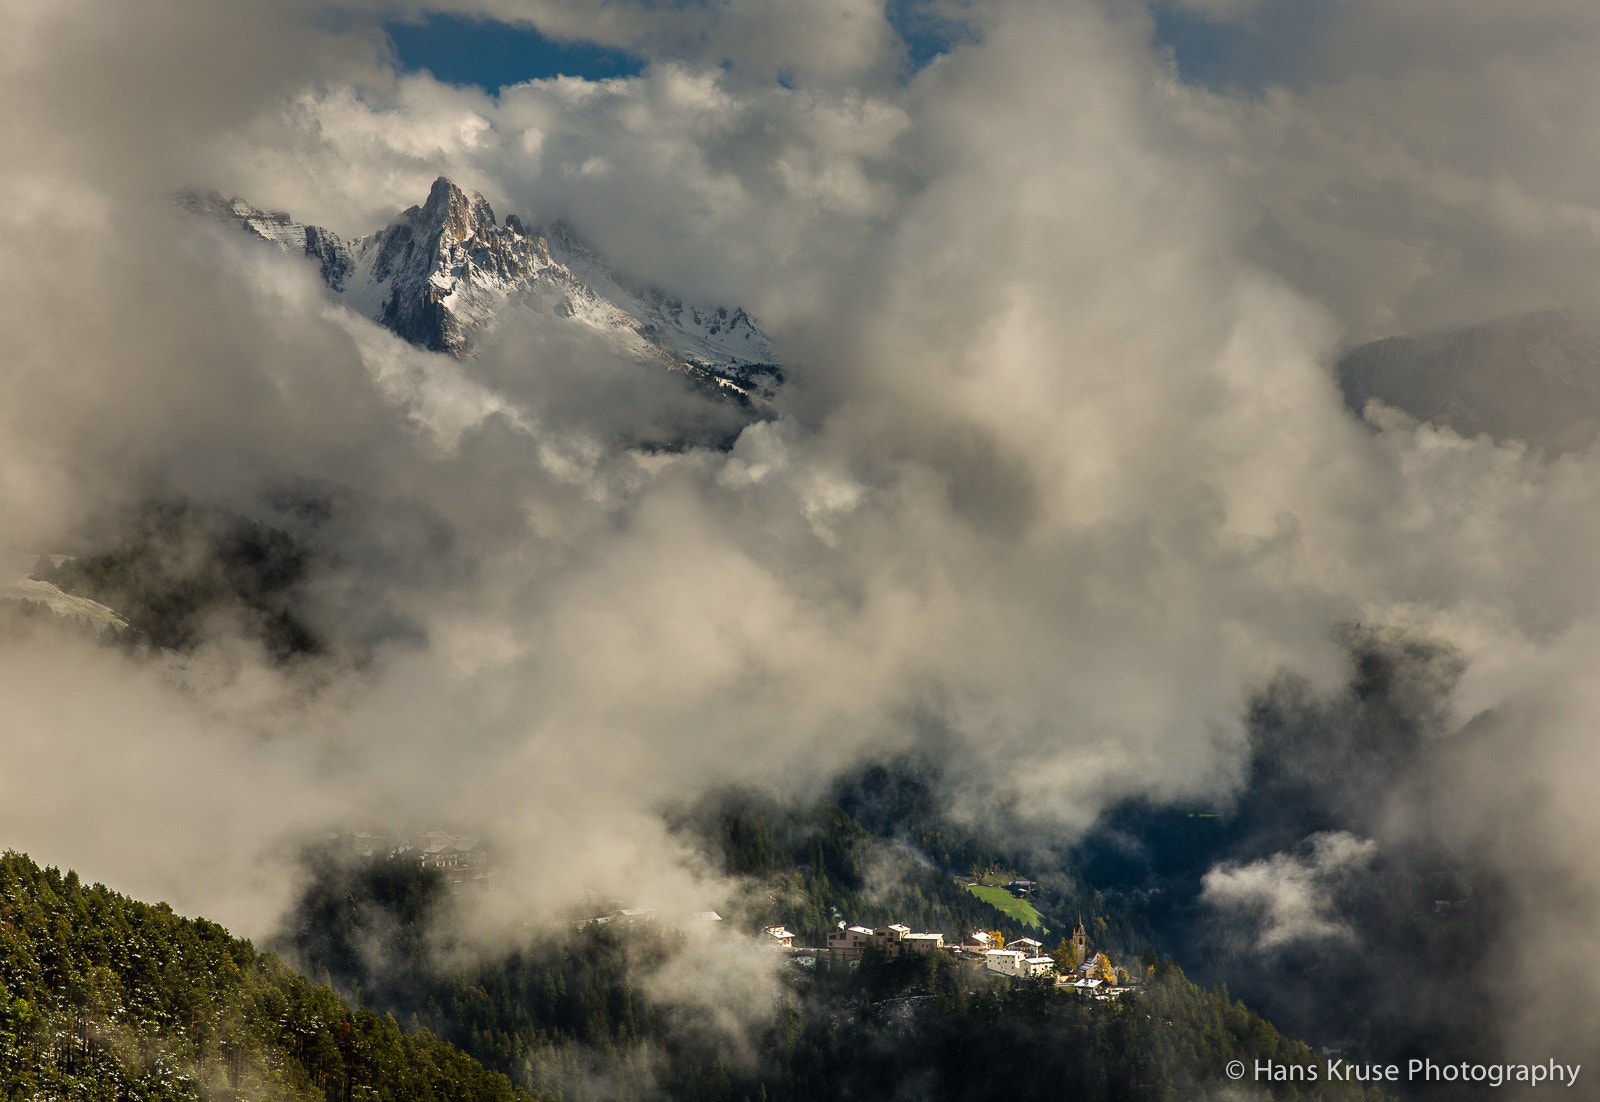 Photograph San Valentino in Campo, Latemar and clouds by Hans Kruse on 500px